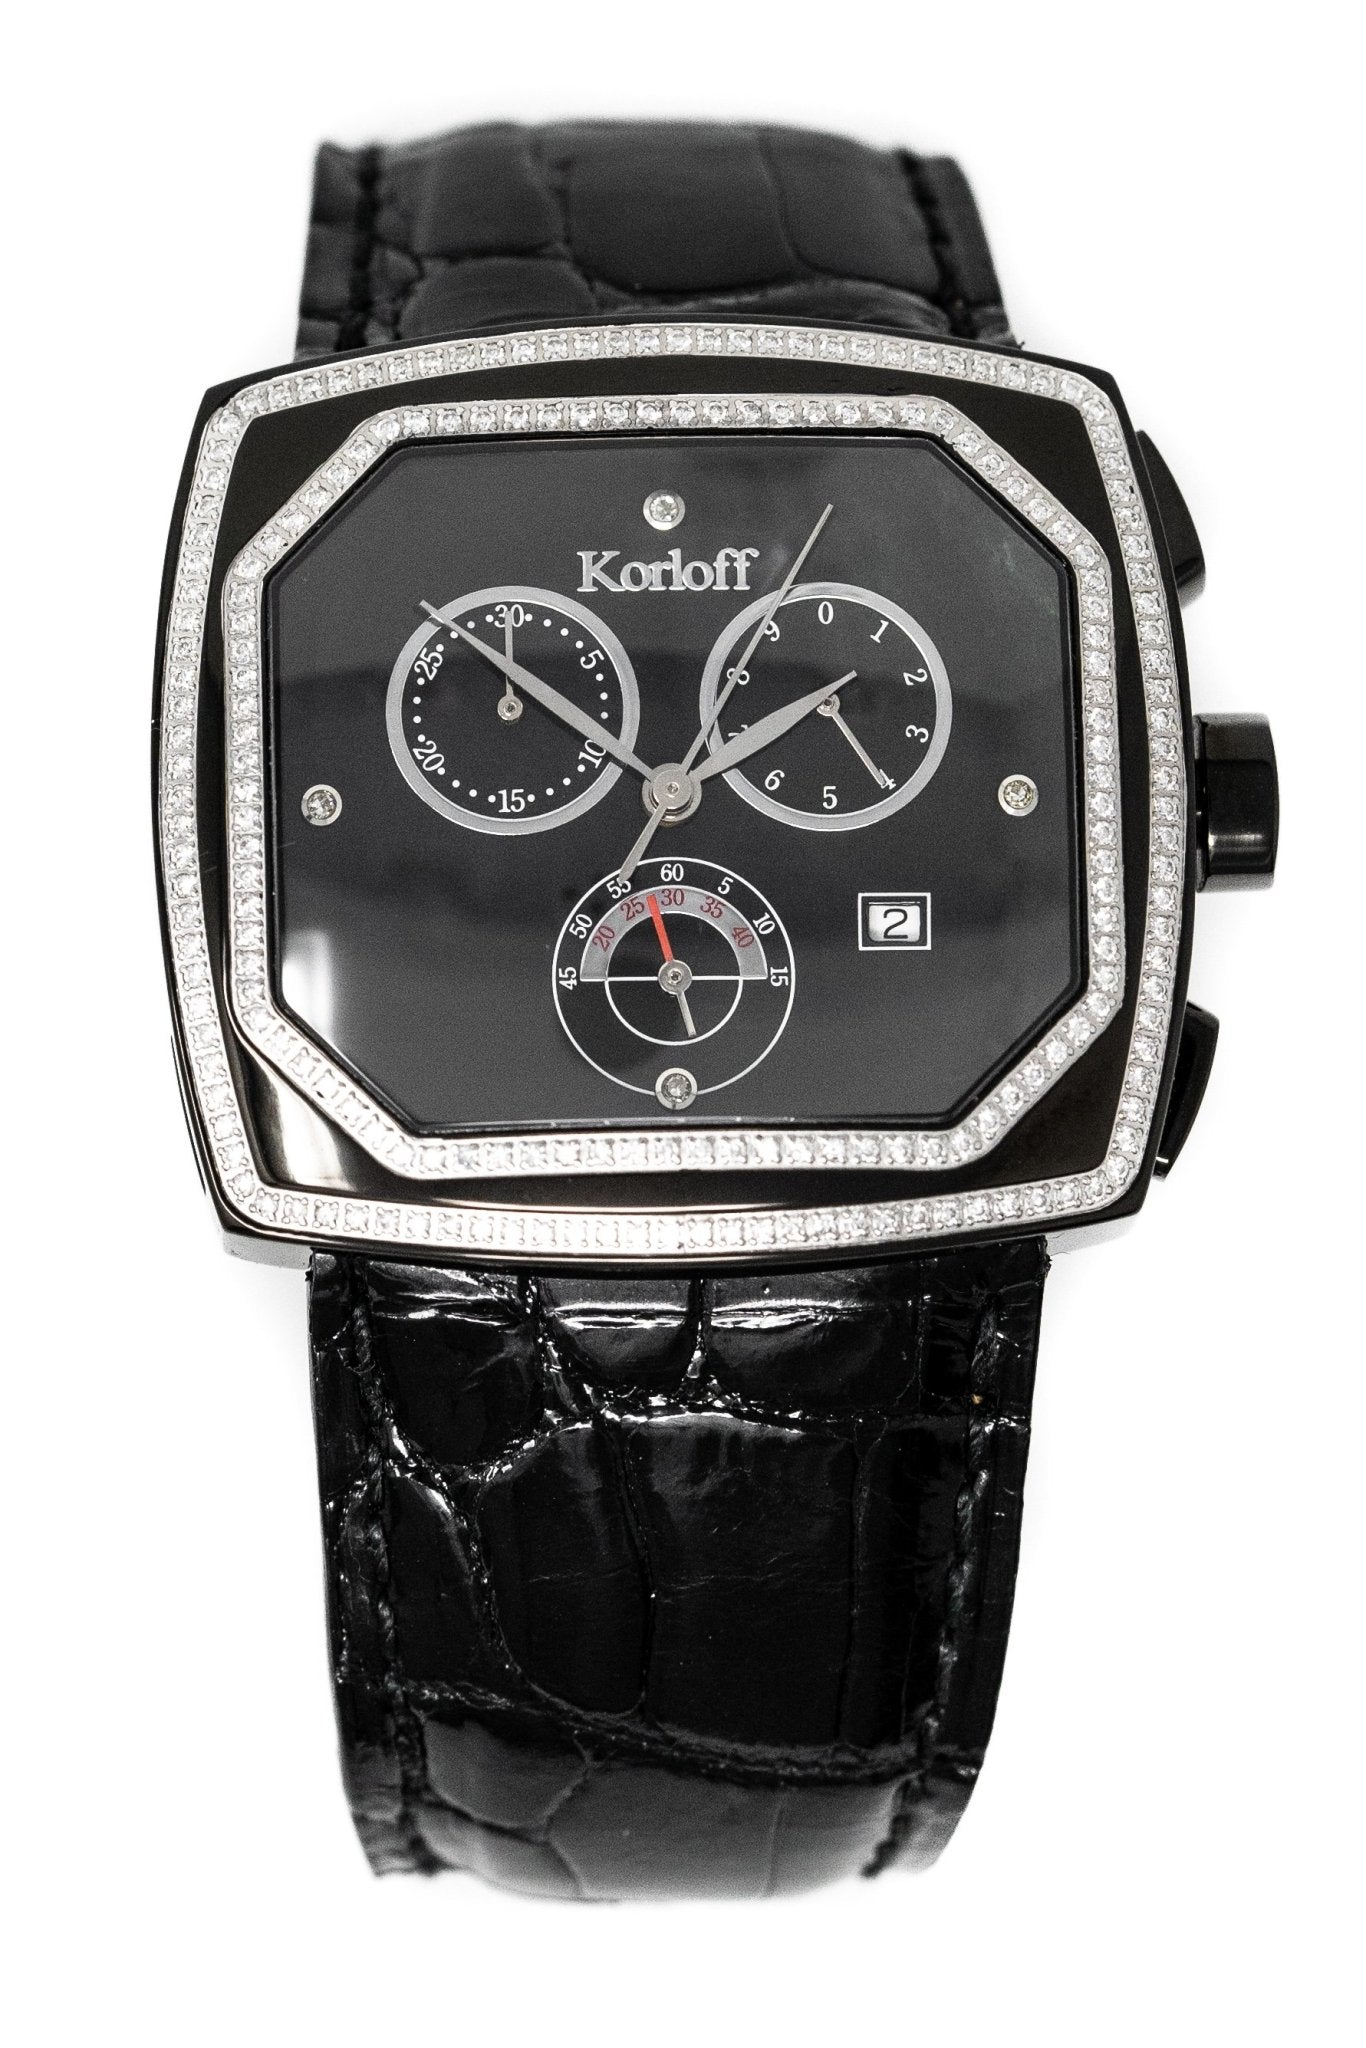 Korloff Transparence Diamond Chronograph Limited Edition - Watches & Crystals